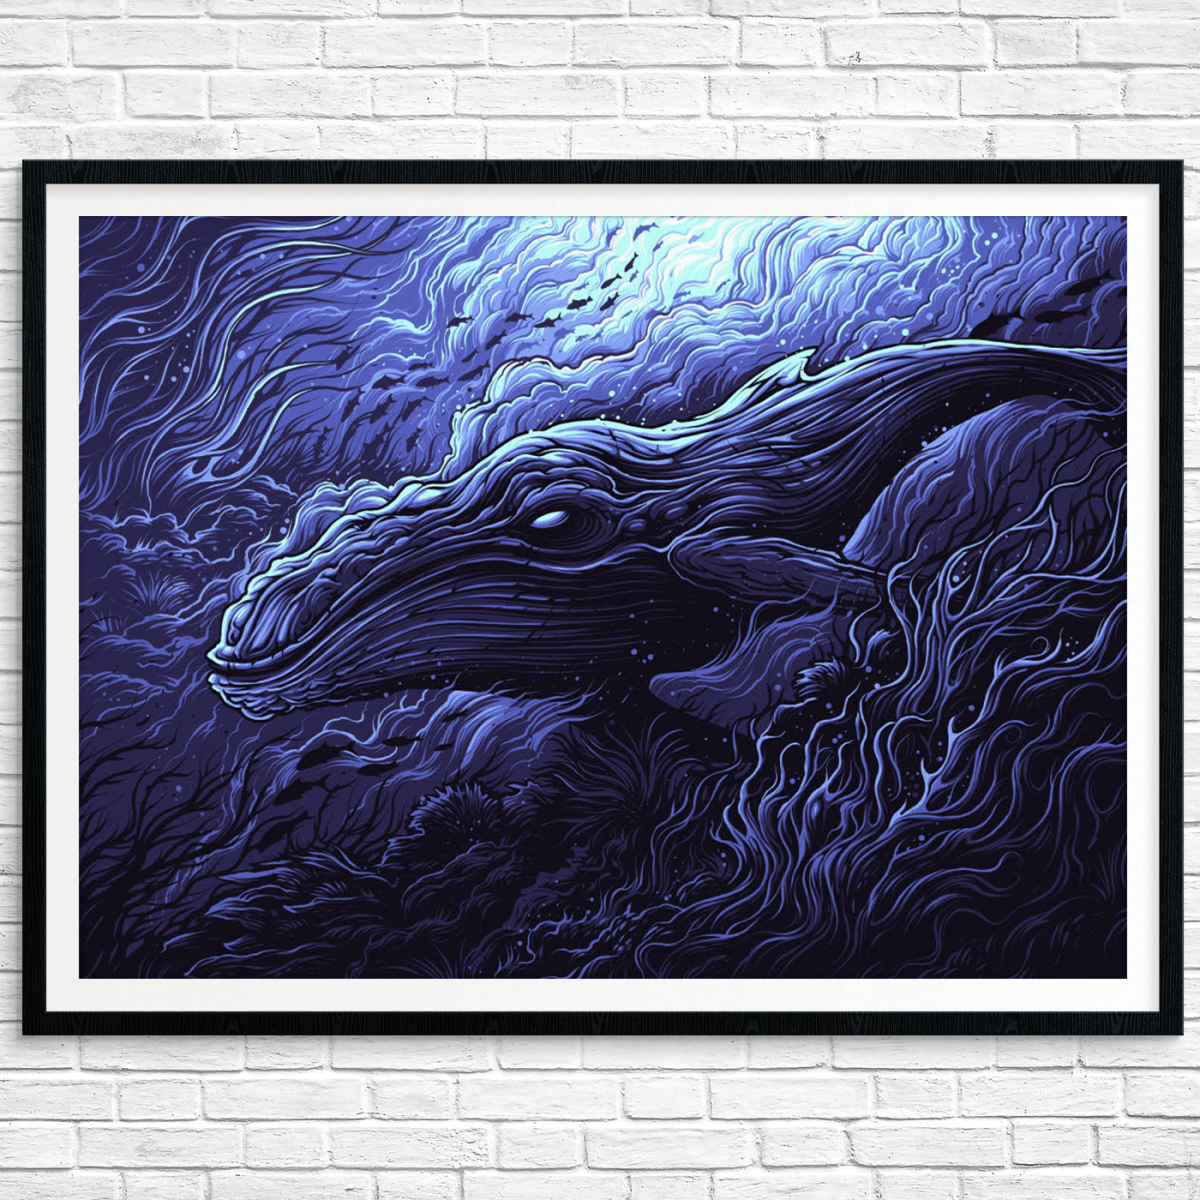 """Megaptera Novaeangliae"" by Dan Mumford.  24"" x 18"" 5-color Screenprint.  Ed of 25 N.  $70 (variant)"